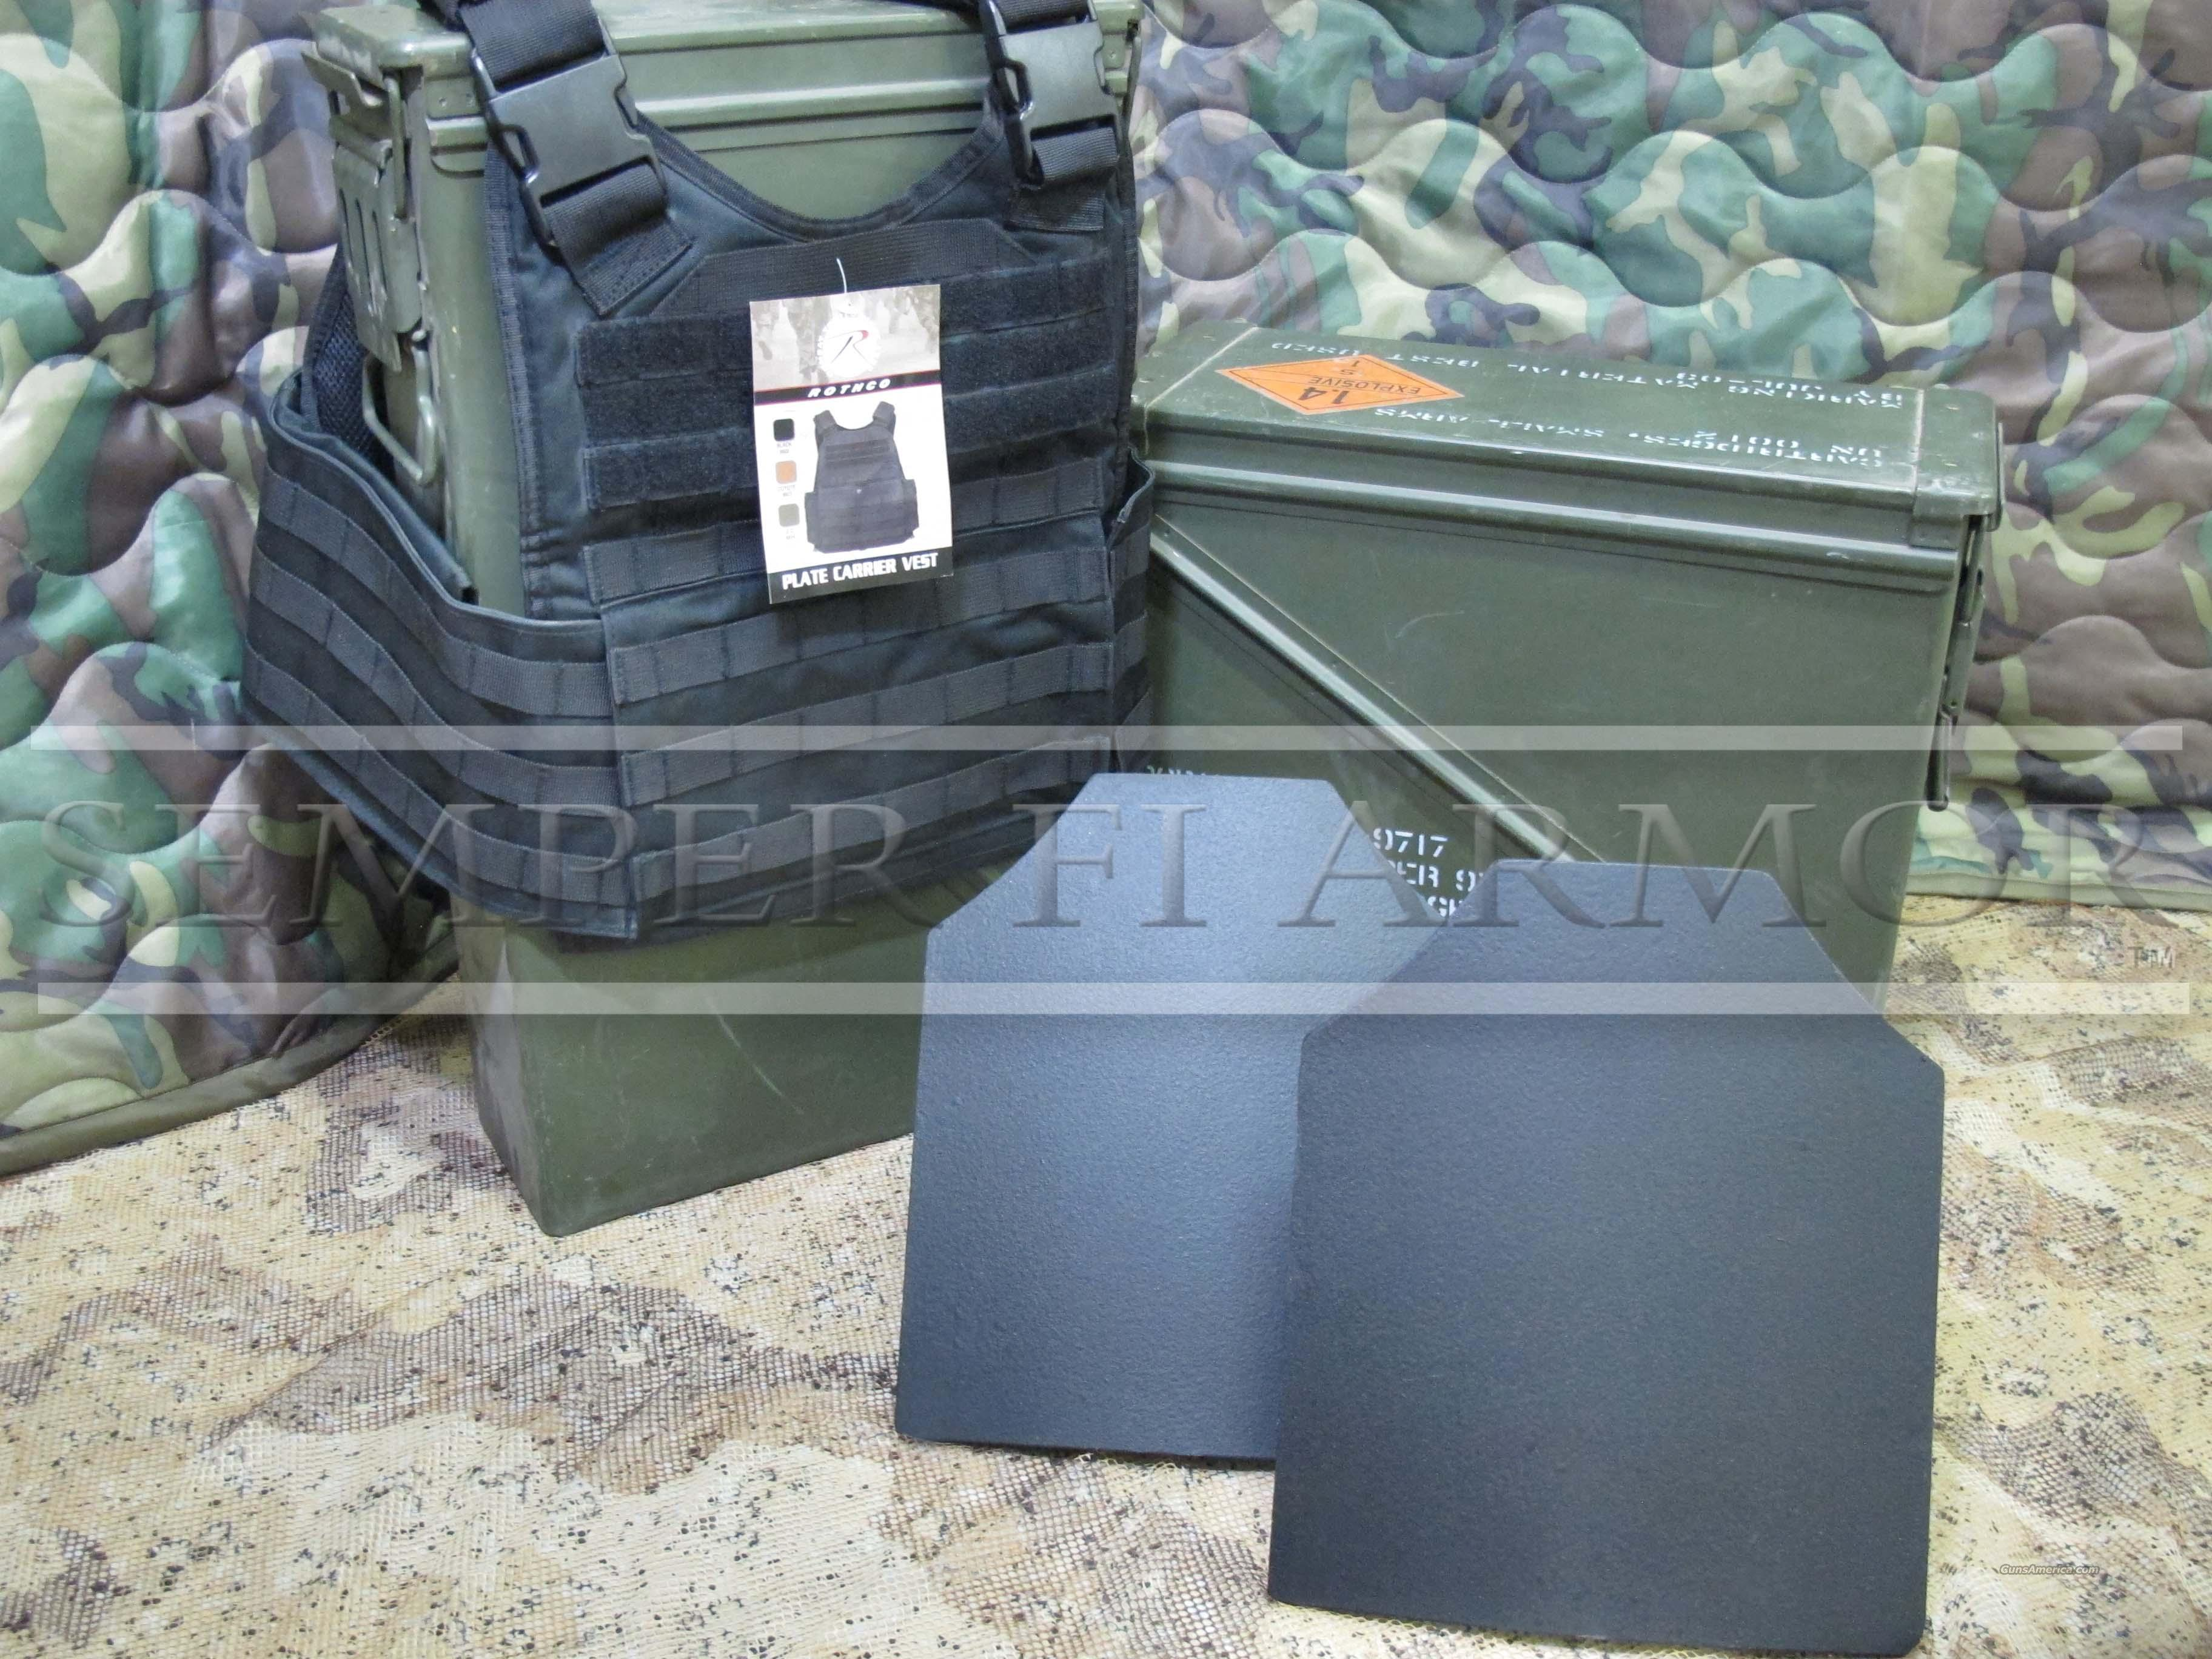 SALE 2-AR500 Body Armor Plates 10x12 & Black Carrier  Non-Guns > Tactical Equipment/Vests